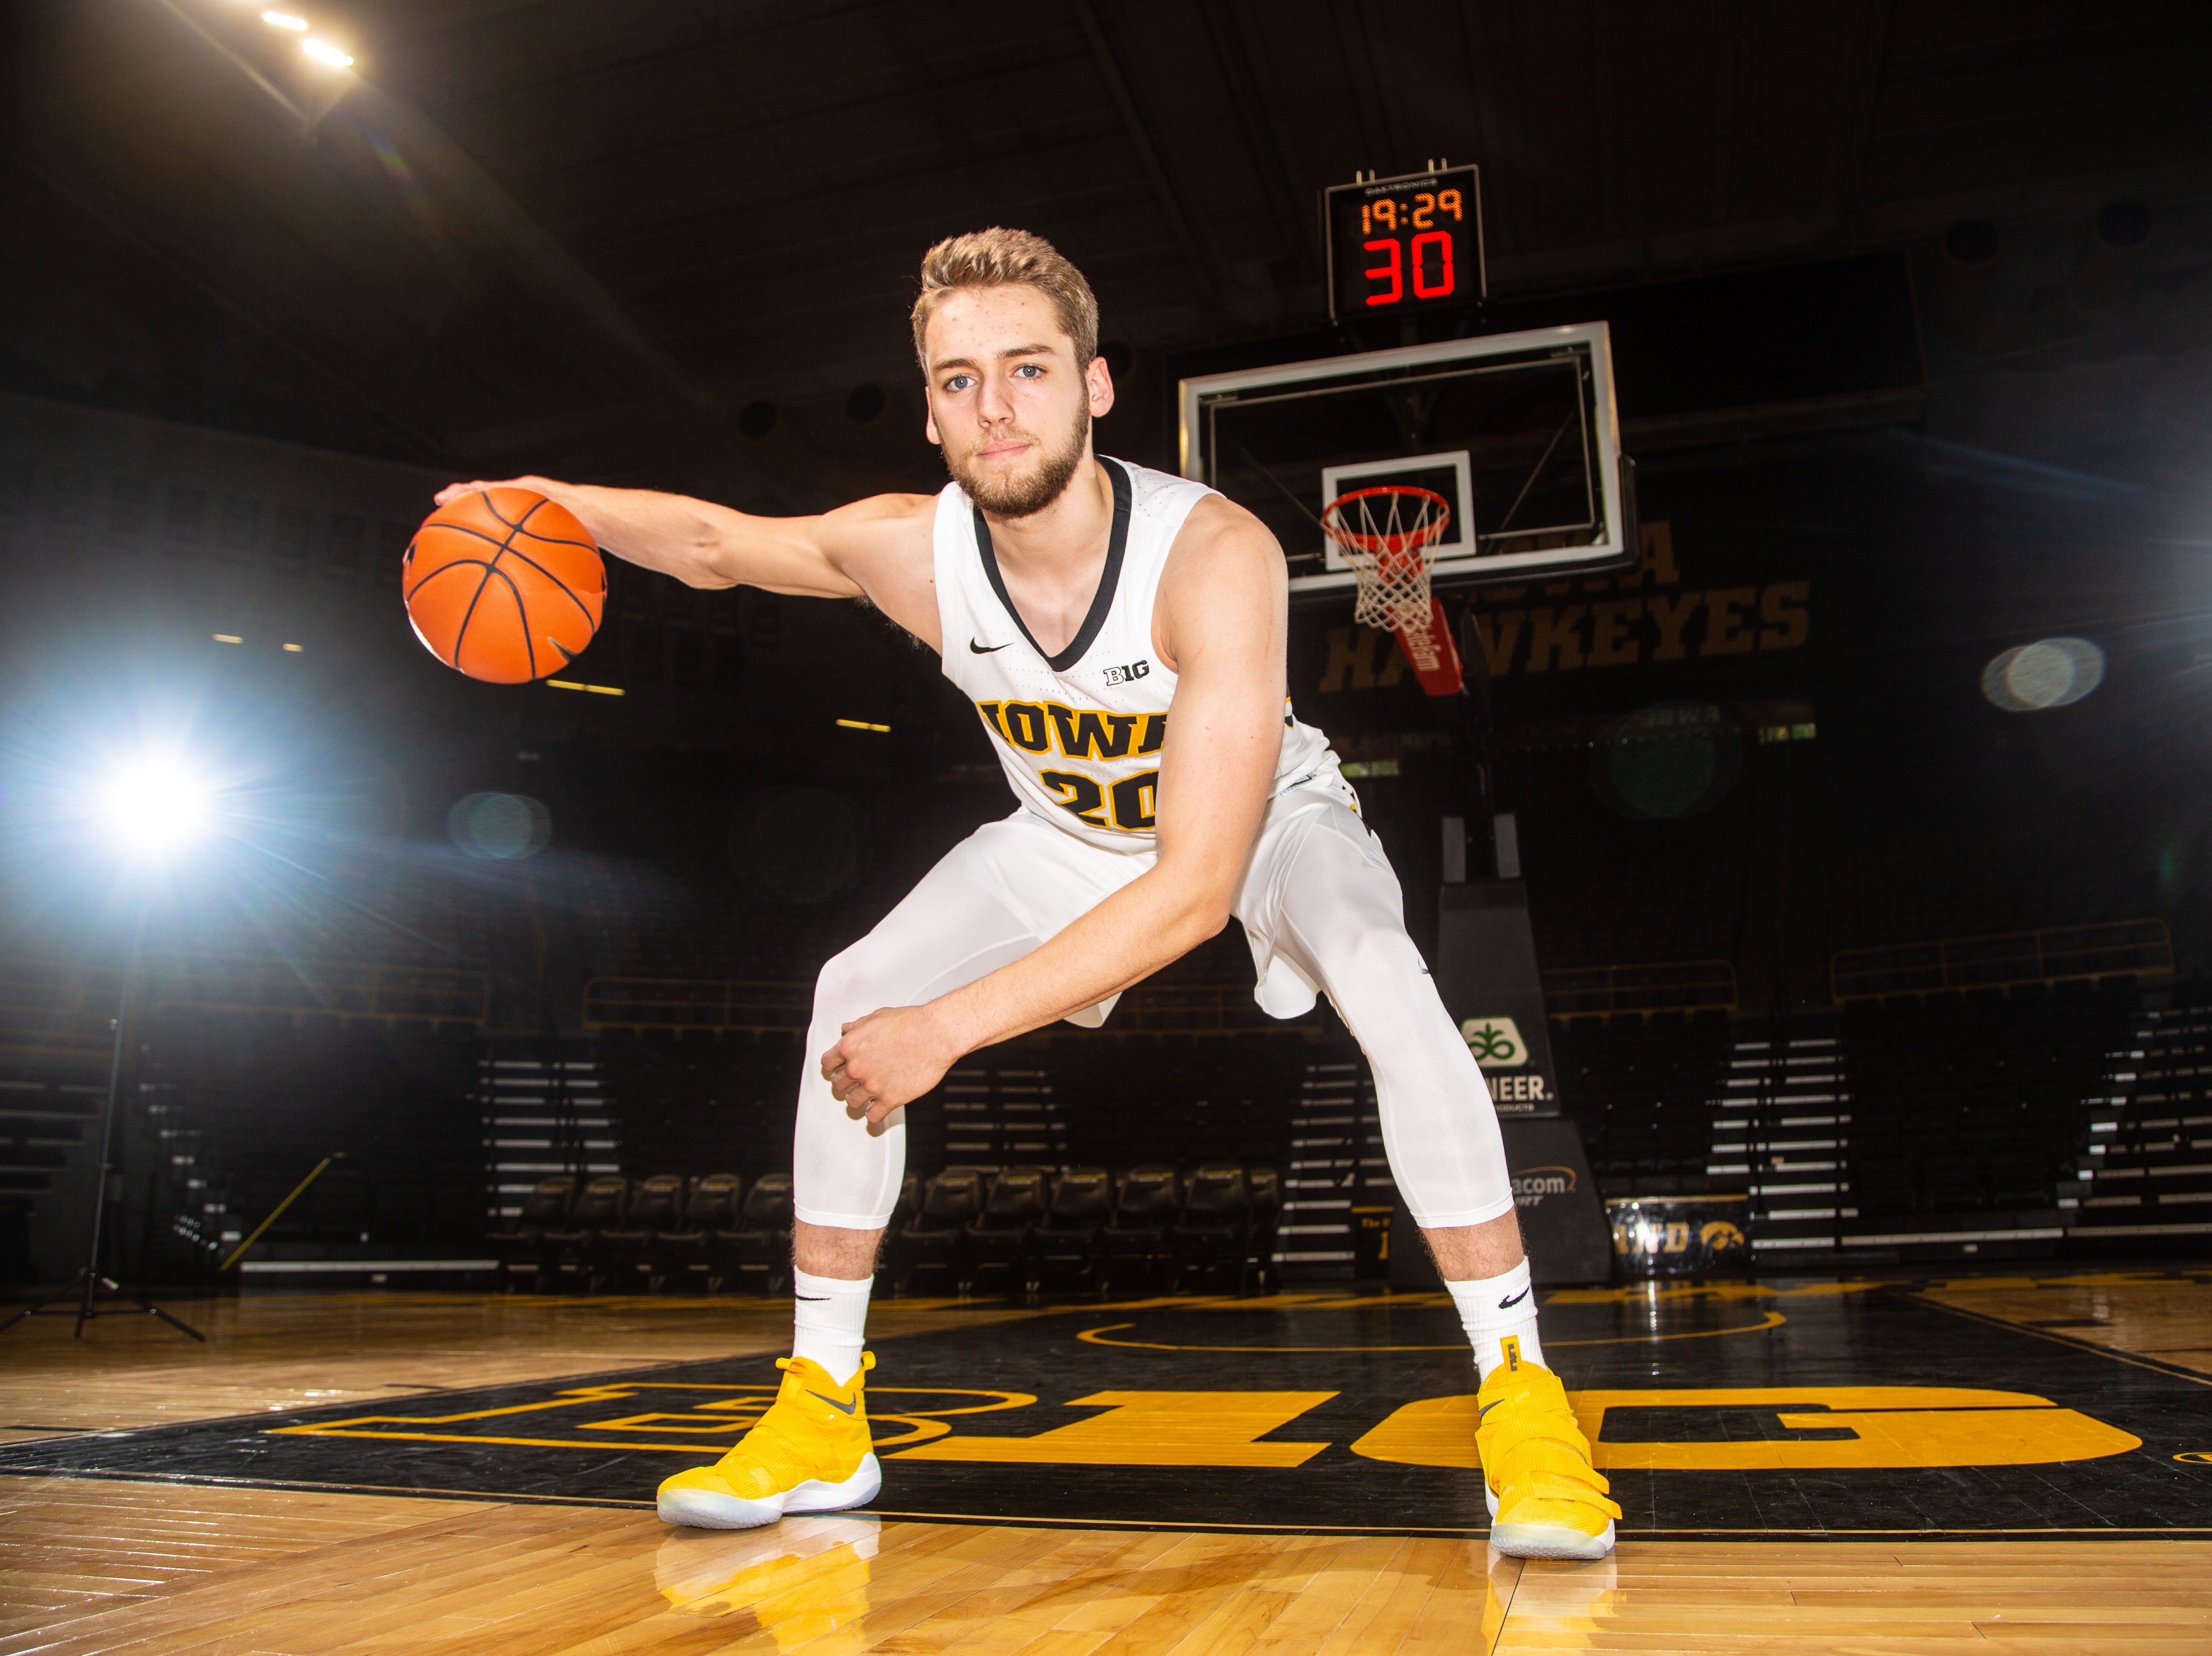 Iowa forward Riley Till poses for a photo during Hawkeye media day at Carver Hawkeye ArenaMonday, Oct. 8, 2018.